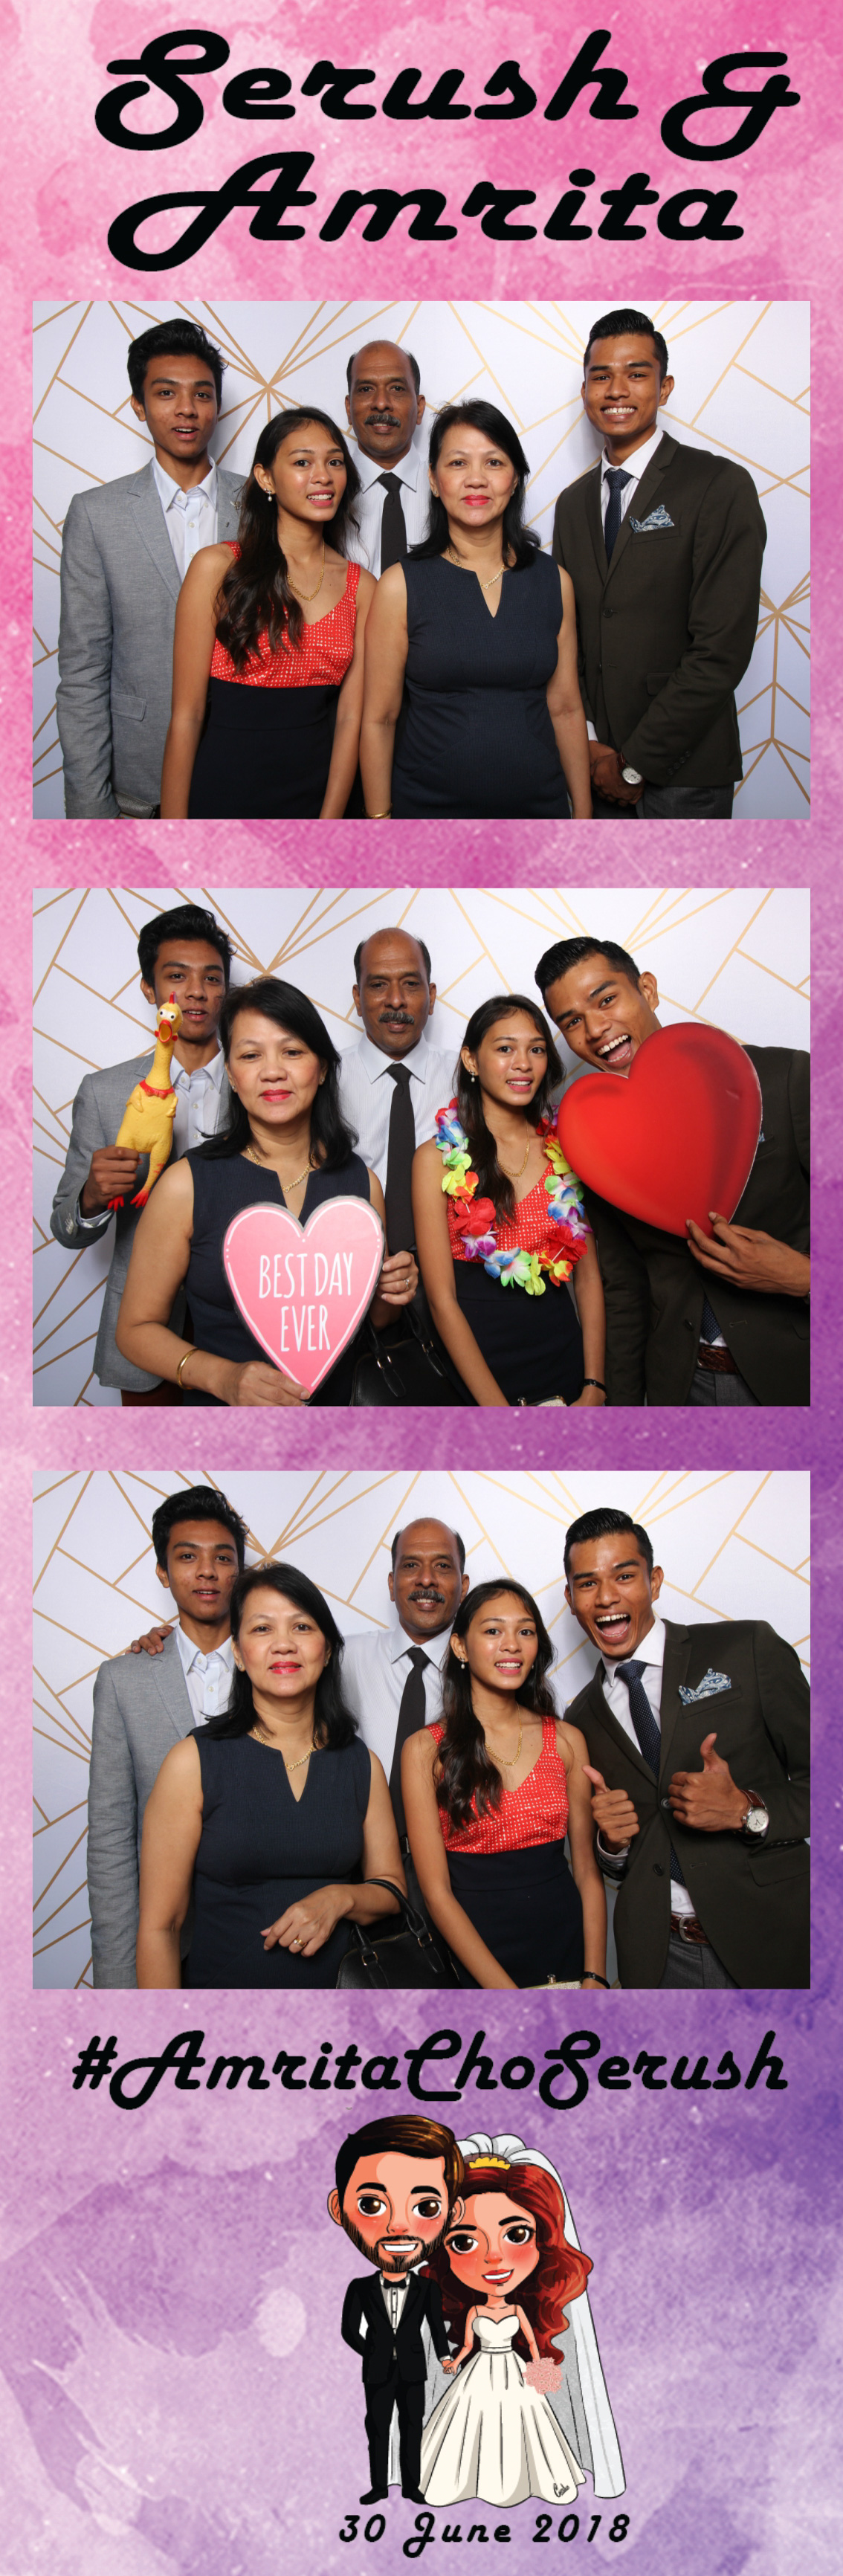 whoots photo booth singapore wedding (13